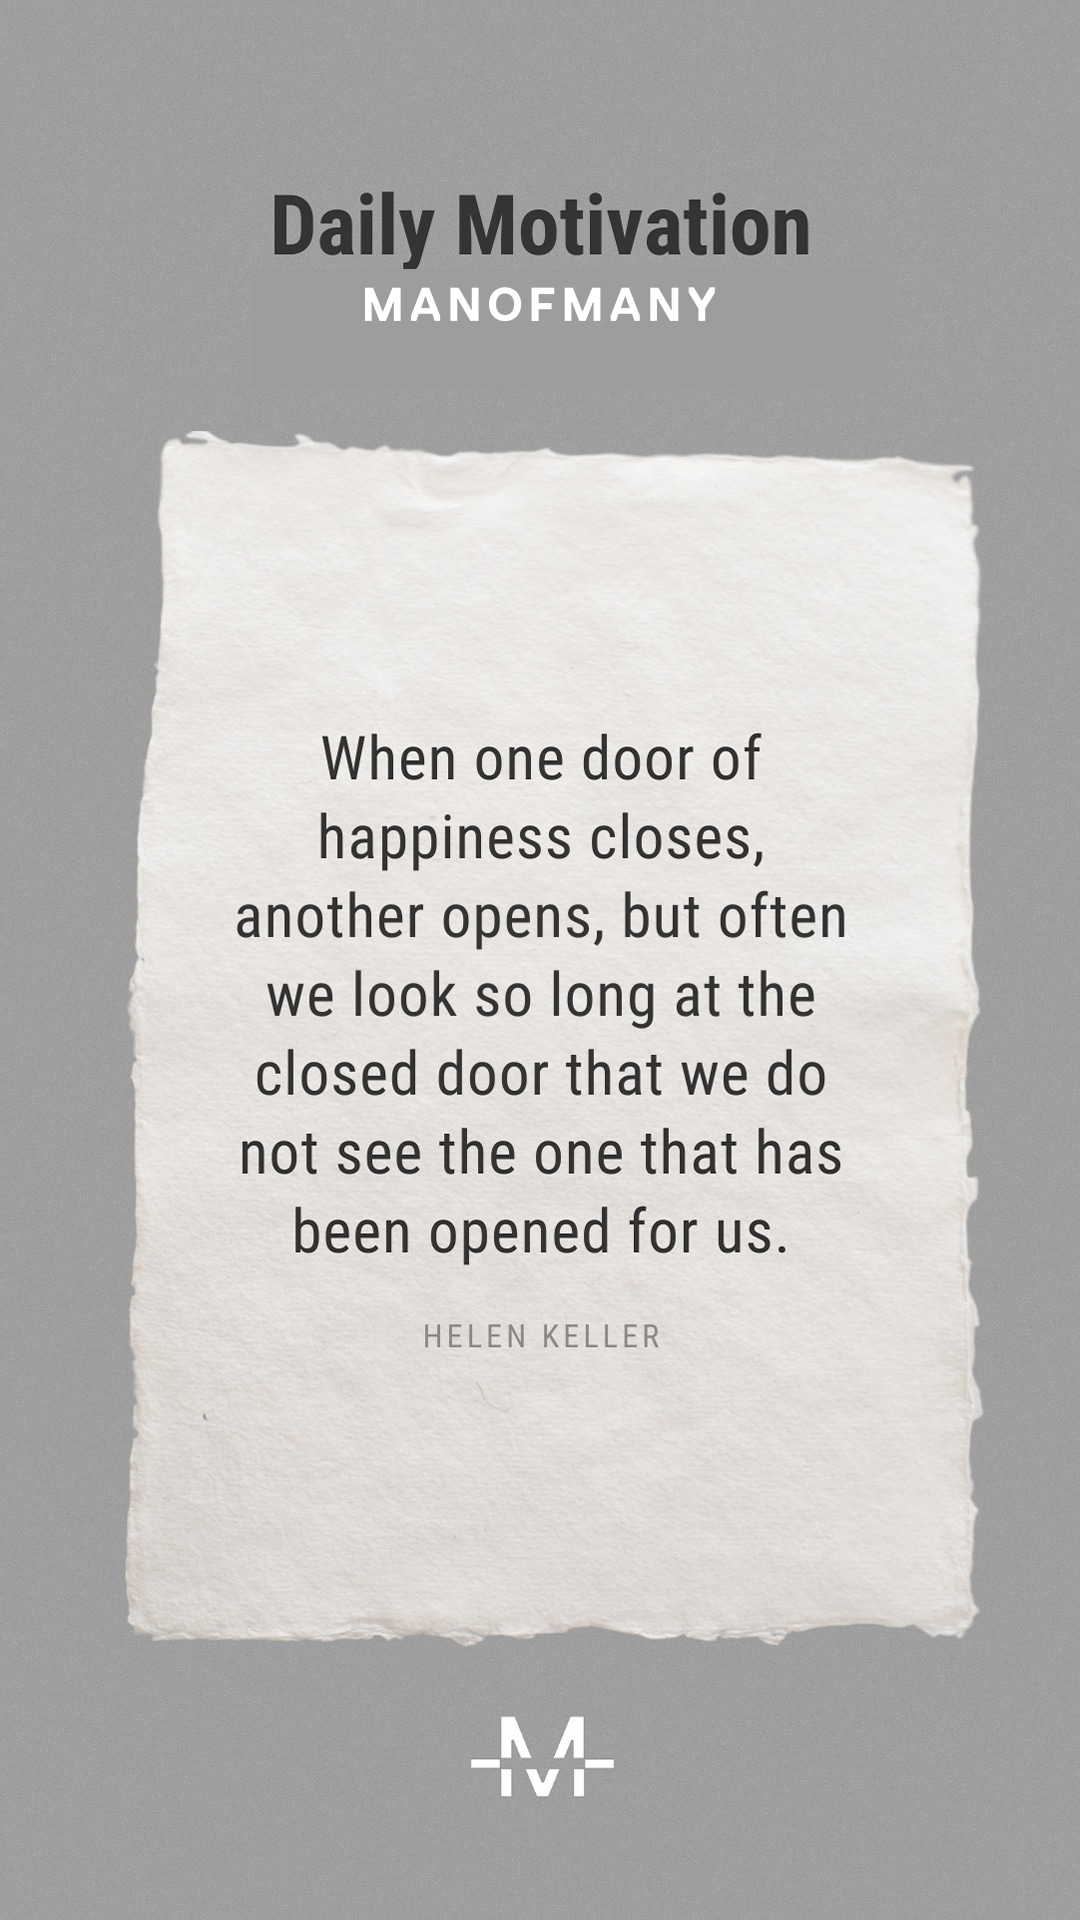 When one door of happiness closes, another opens, but often we look so long at the closed door that we do not see the one that has been opened for us. –Helen Keller quote